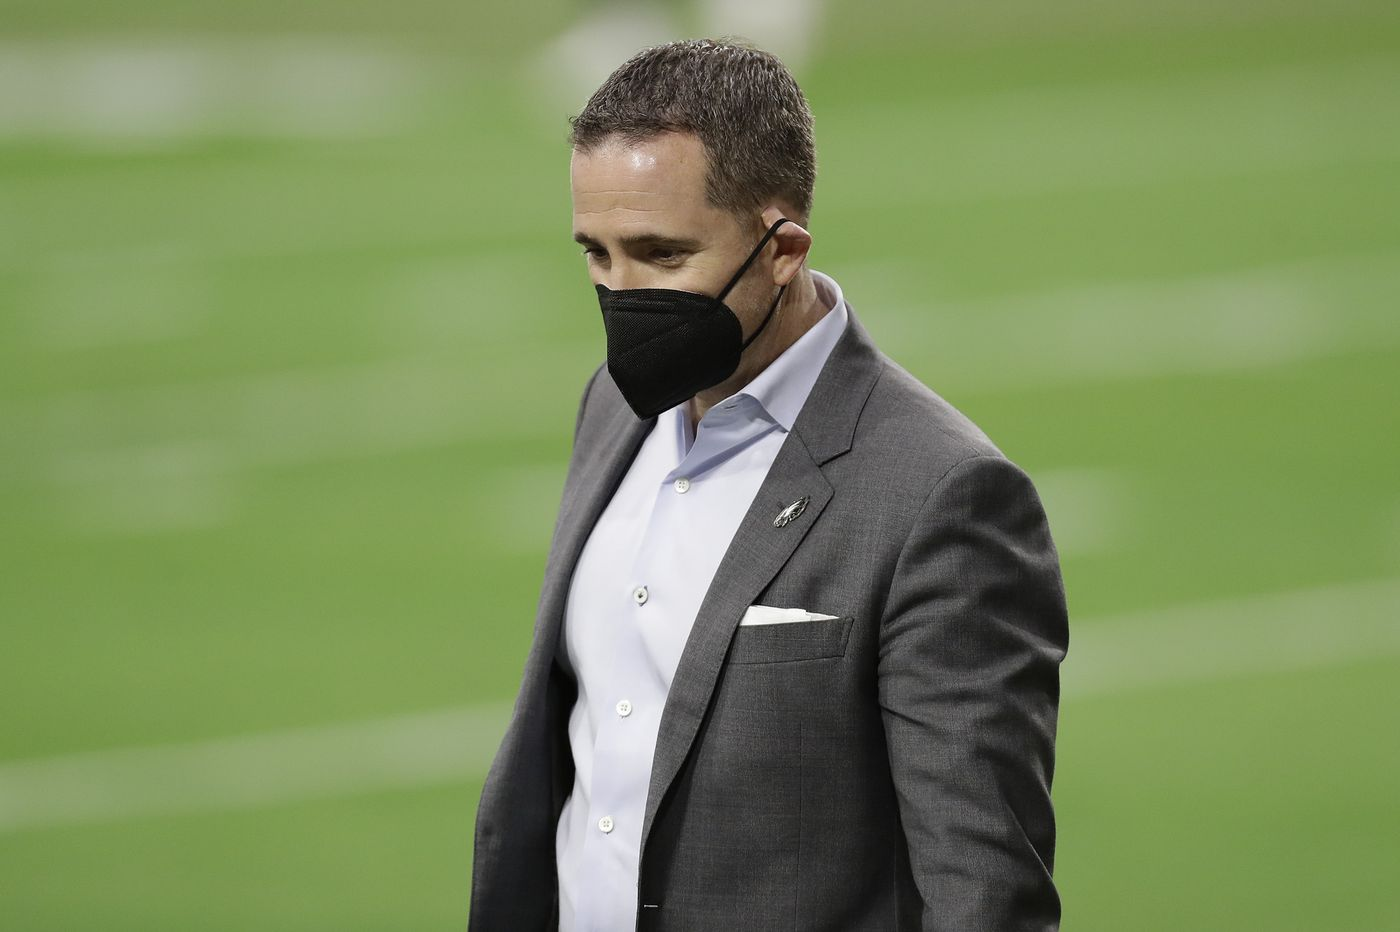 Howie Roseman needs more power if the Eagles hope to thrive | Marcus Hayes